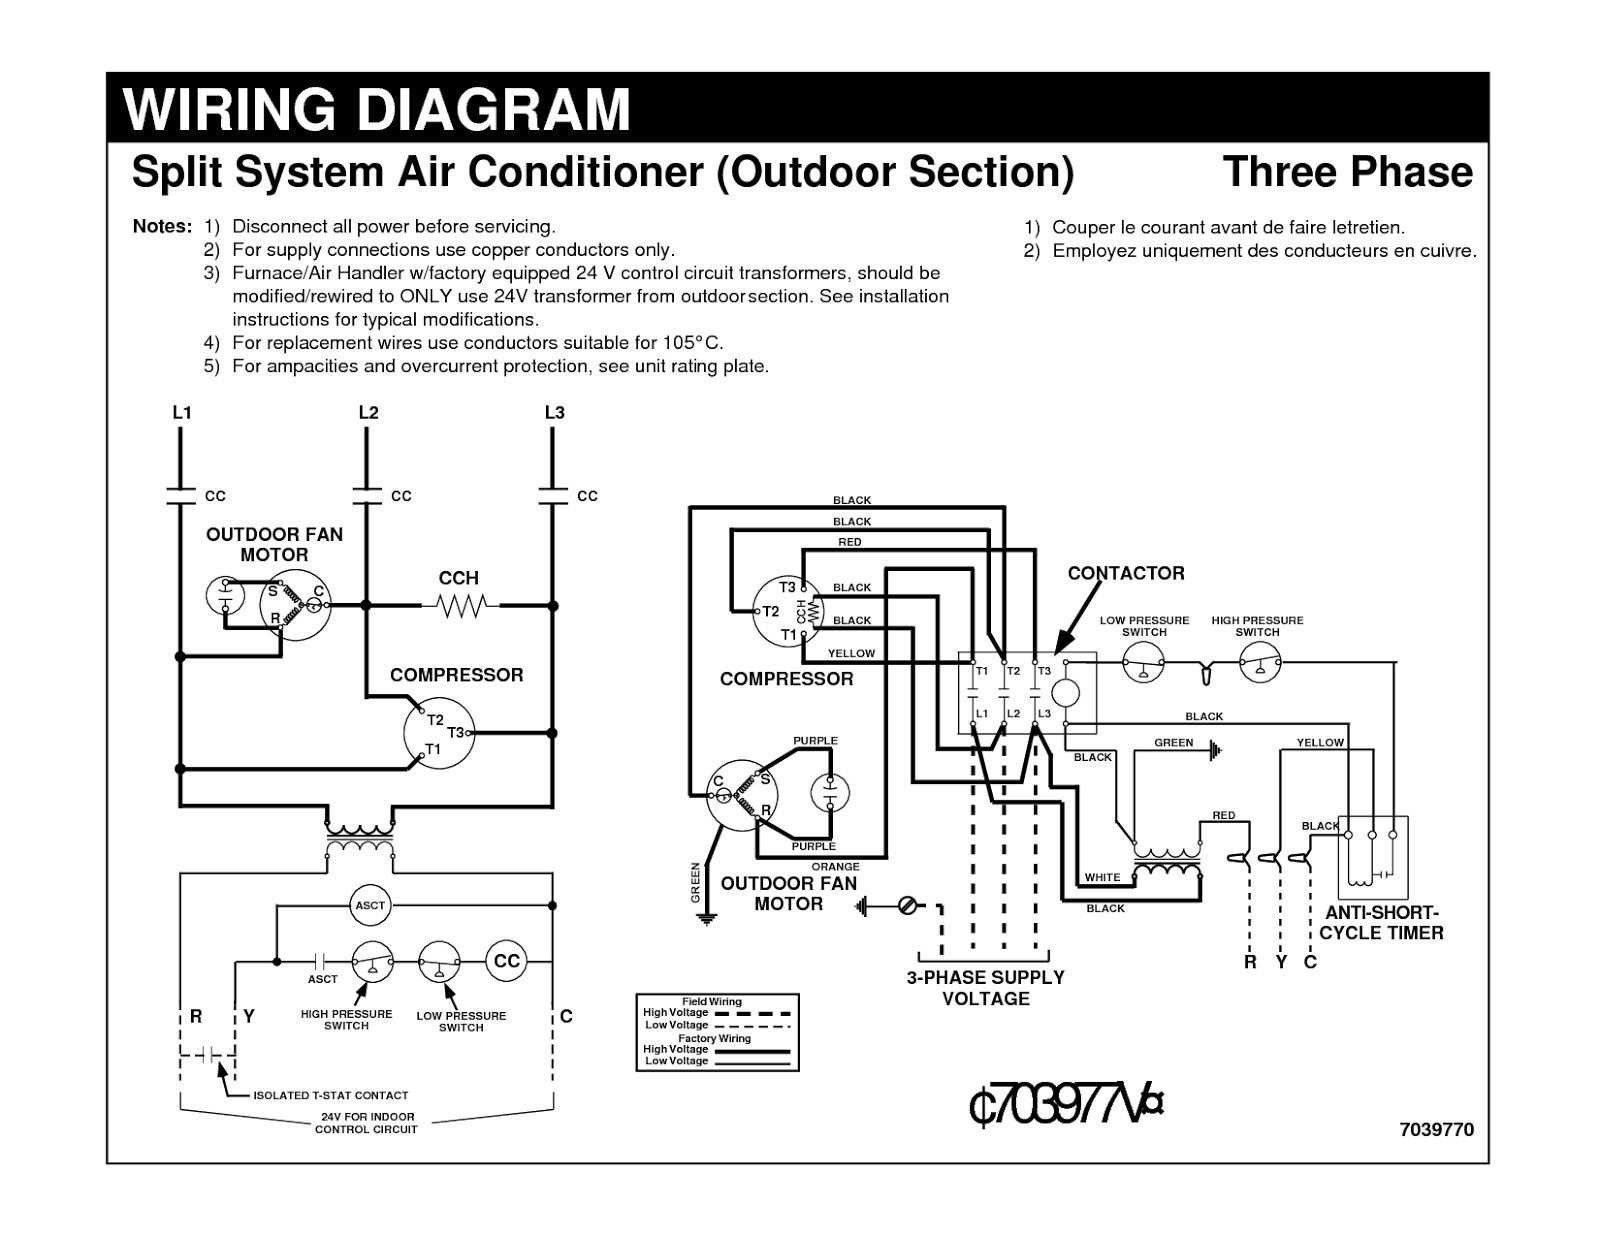 Pin by Ryanben on Diagram Template Electrical circuit